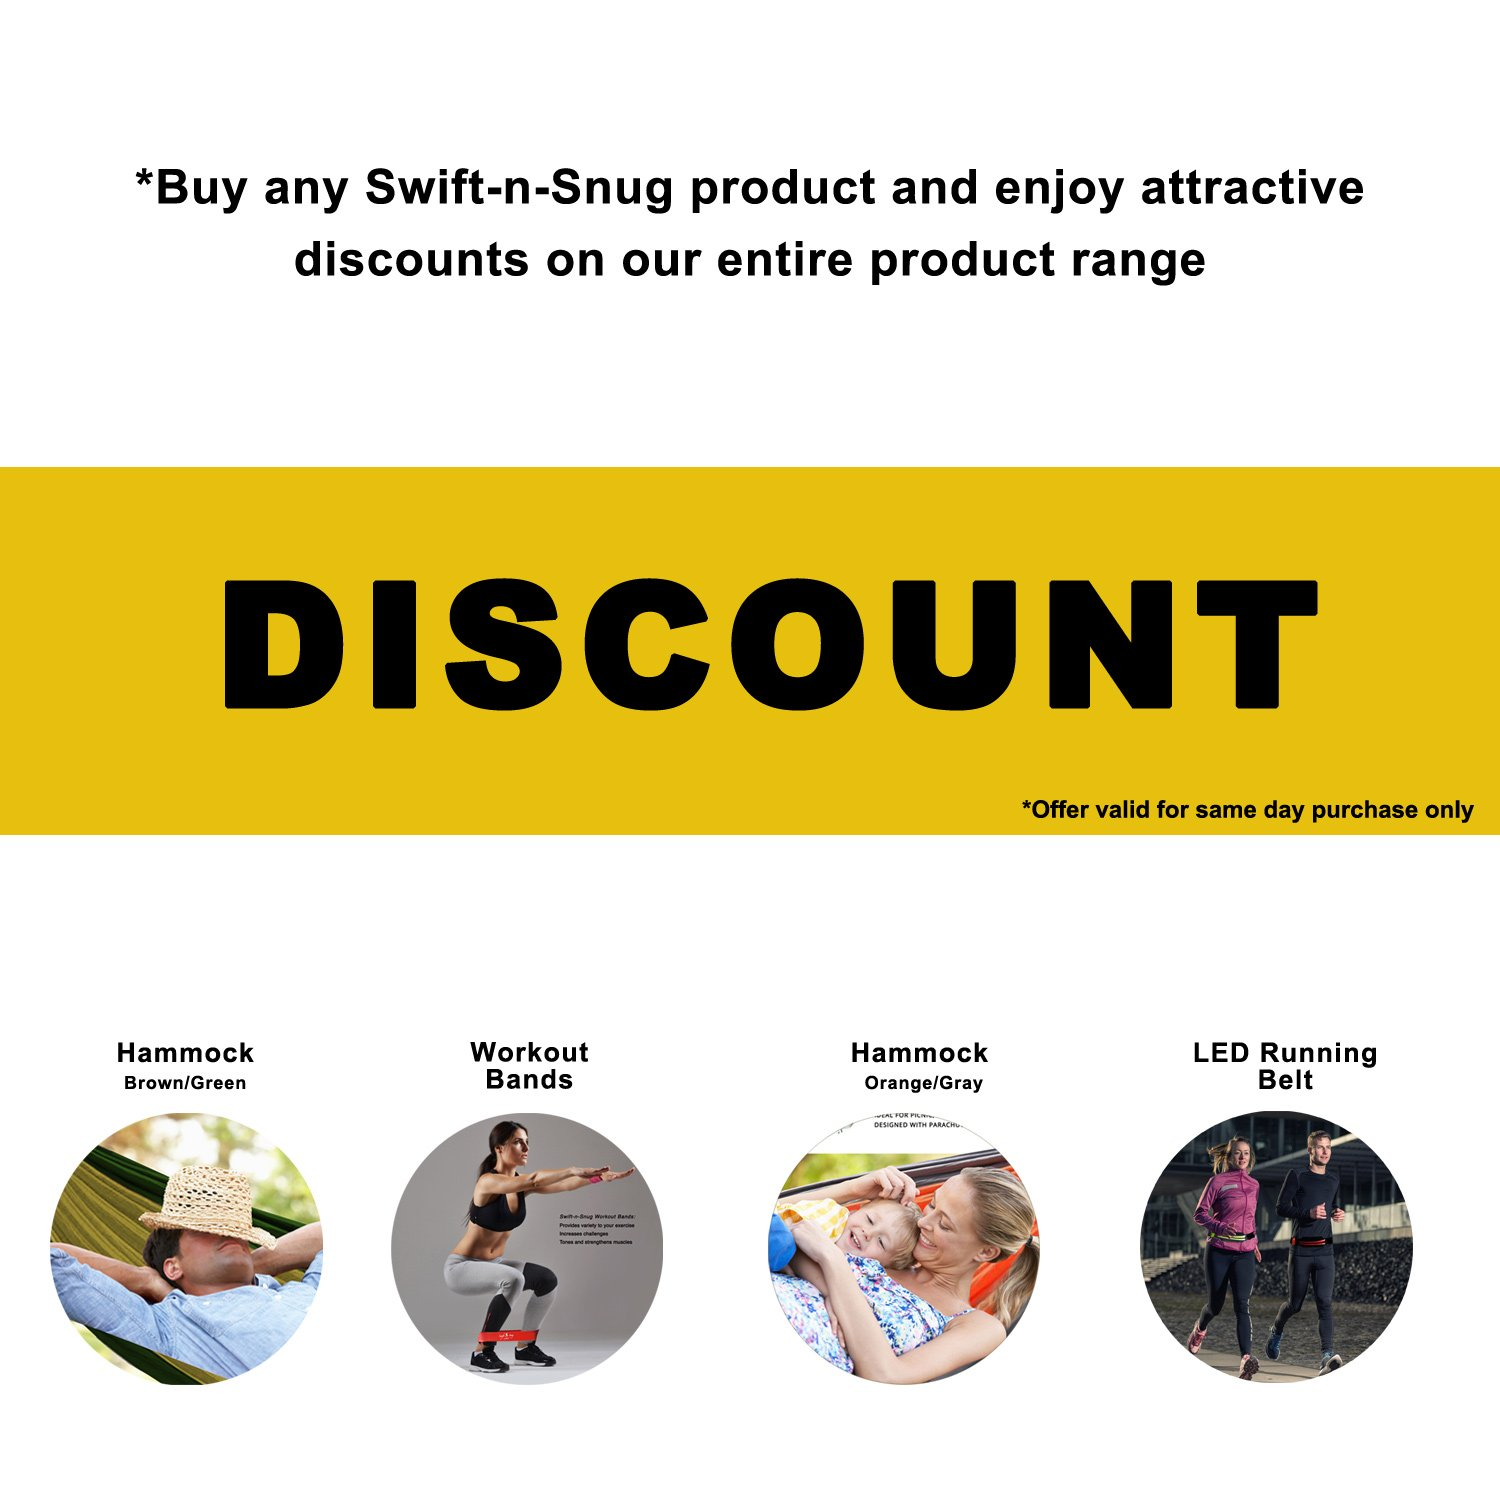 For A Toned Body Heavy Best Workout Bands From Swift-n-Snug Medium /& Light In Free Nylon Carry Pouch Set of 4 Resistance Exercise Bands : X-Heavy